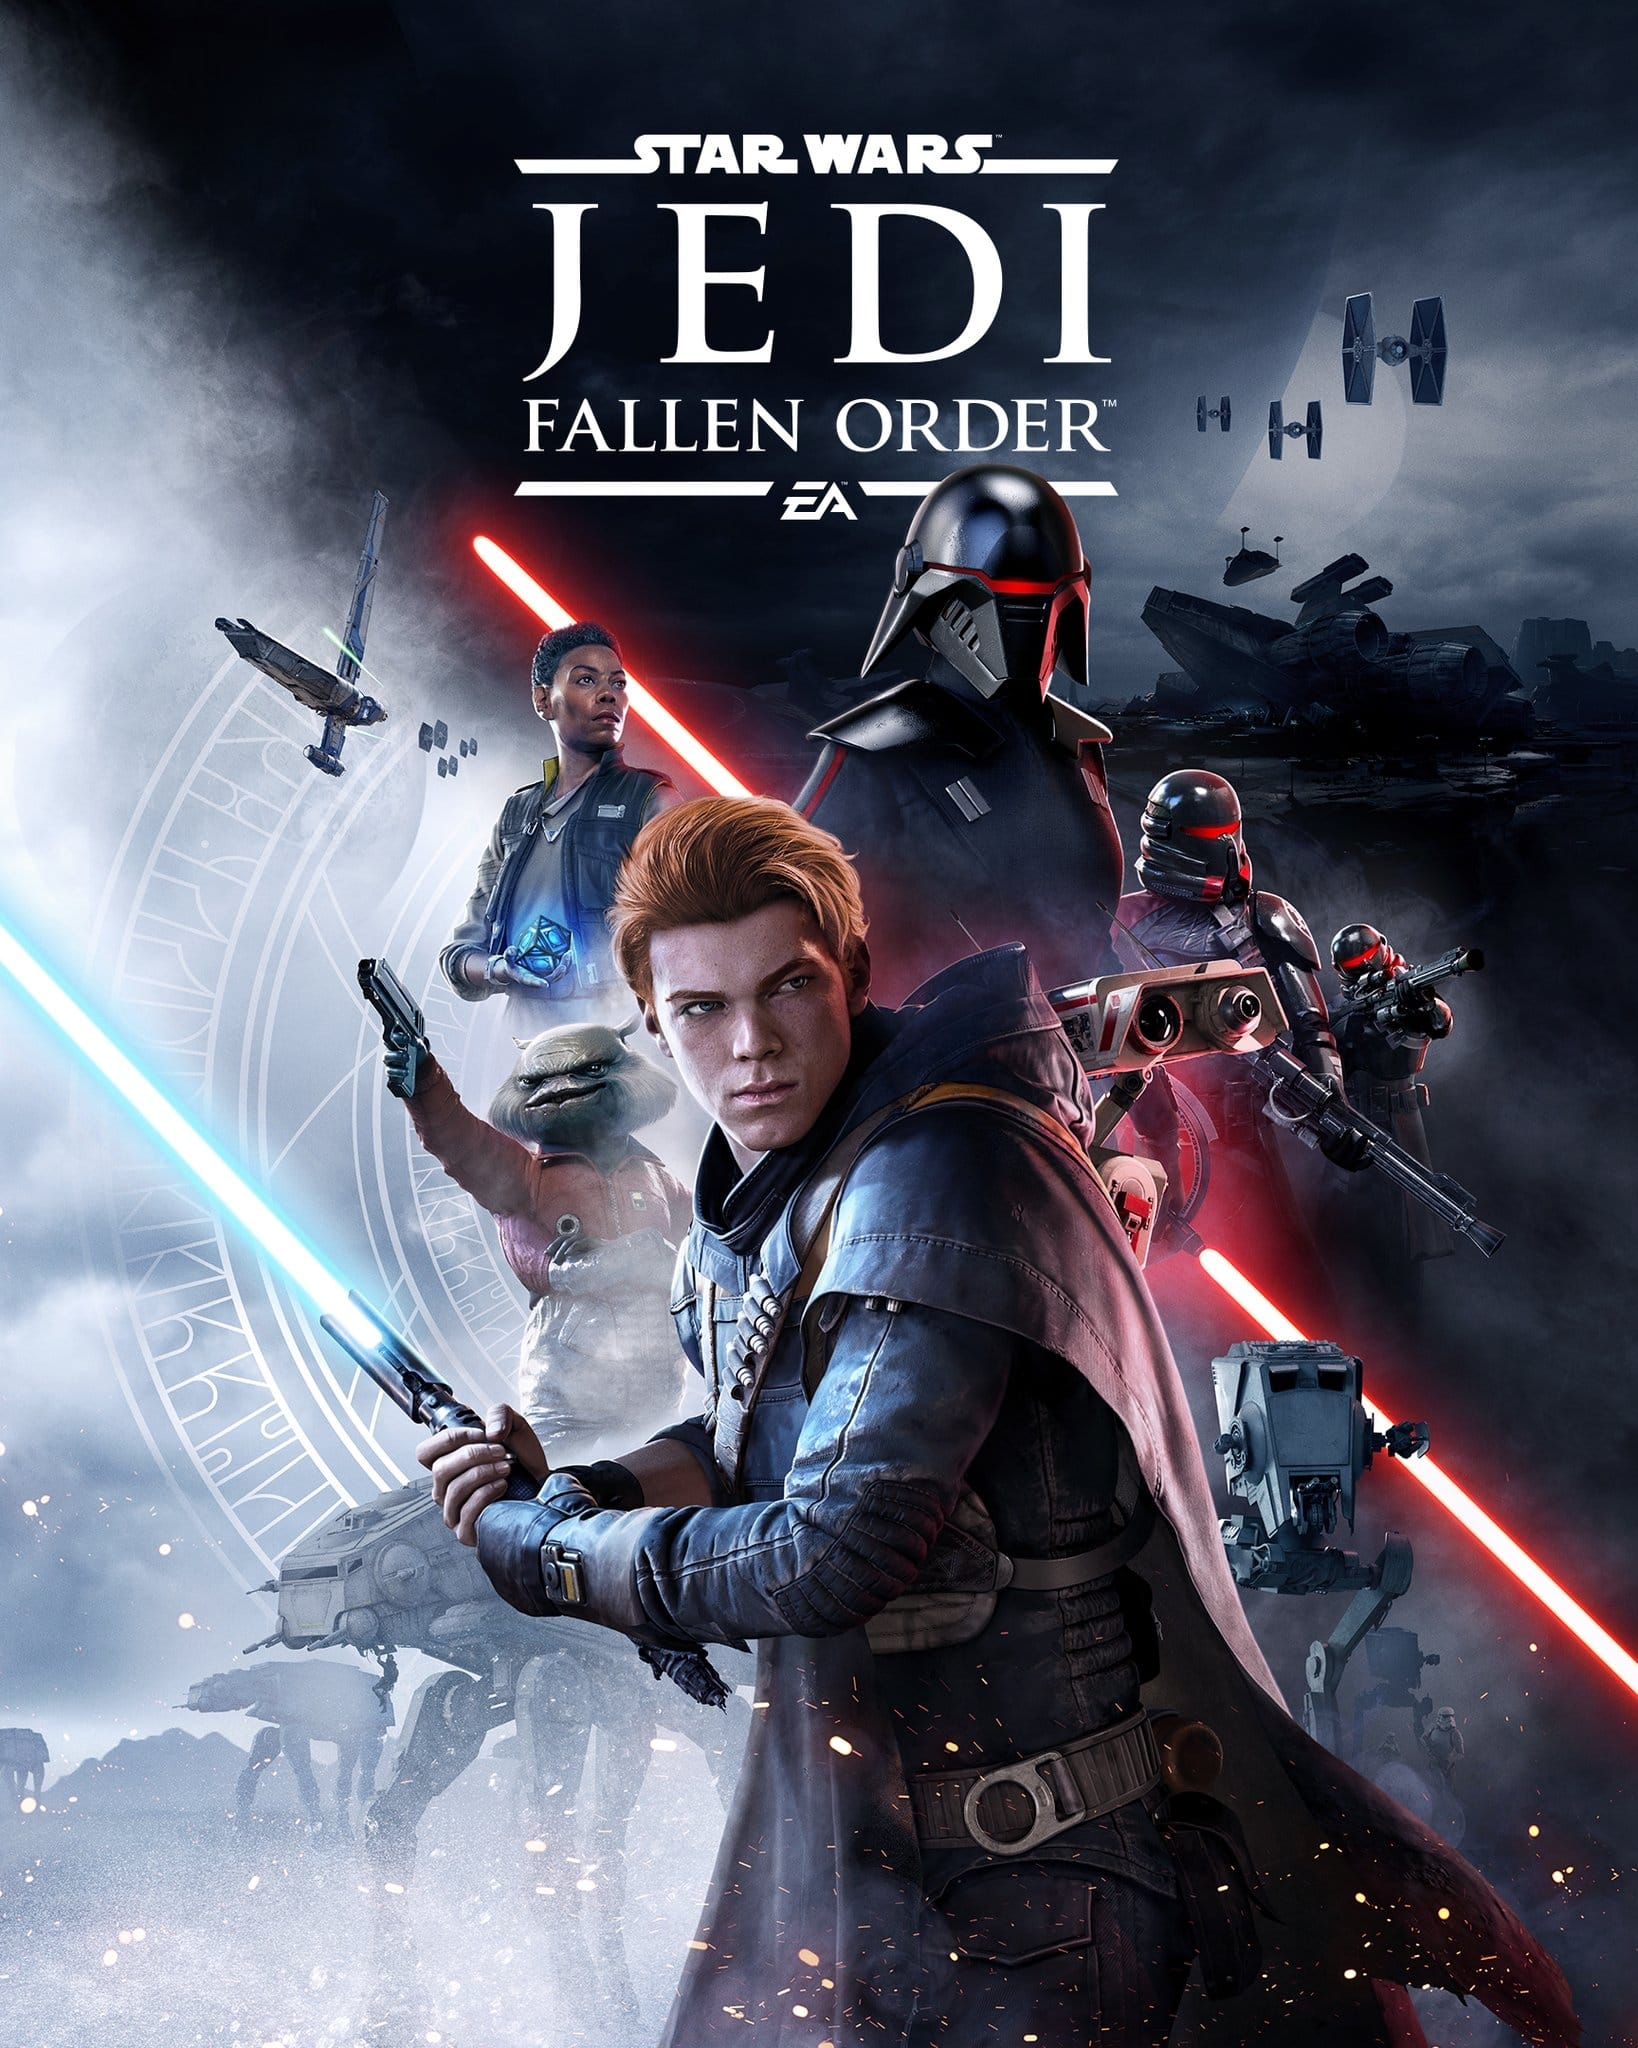 Pre-Owned Star Wars Jedi: Fallen Order (Xbox One or PS4) - $23.51 + Free S/H on $35+ @ GameStop